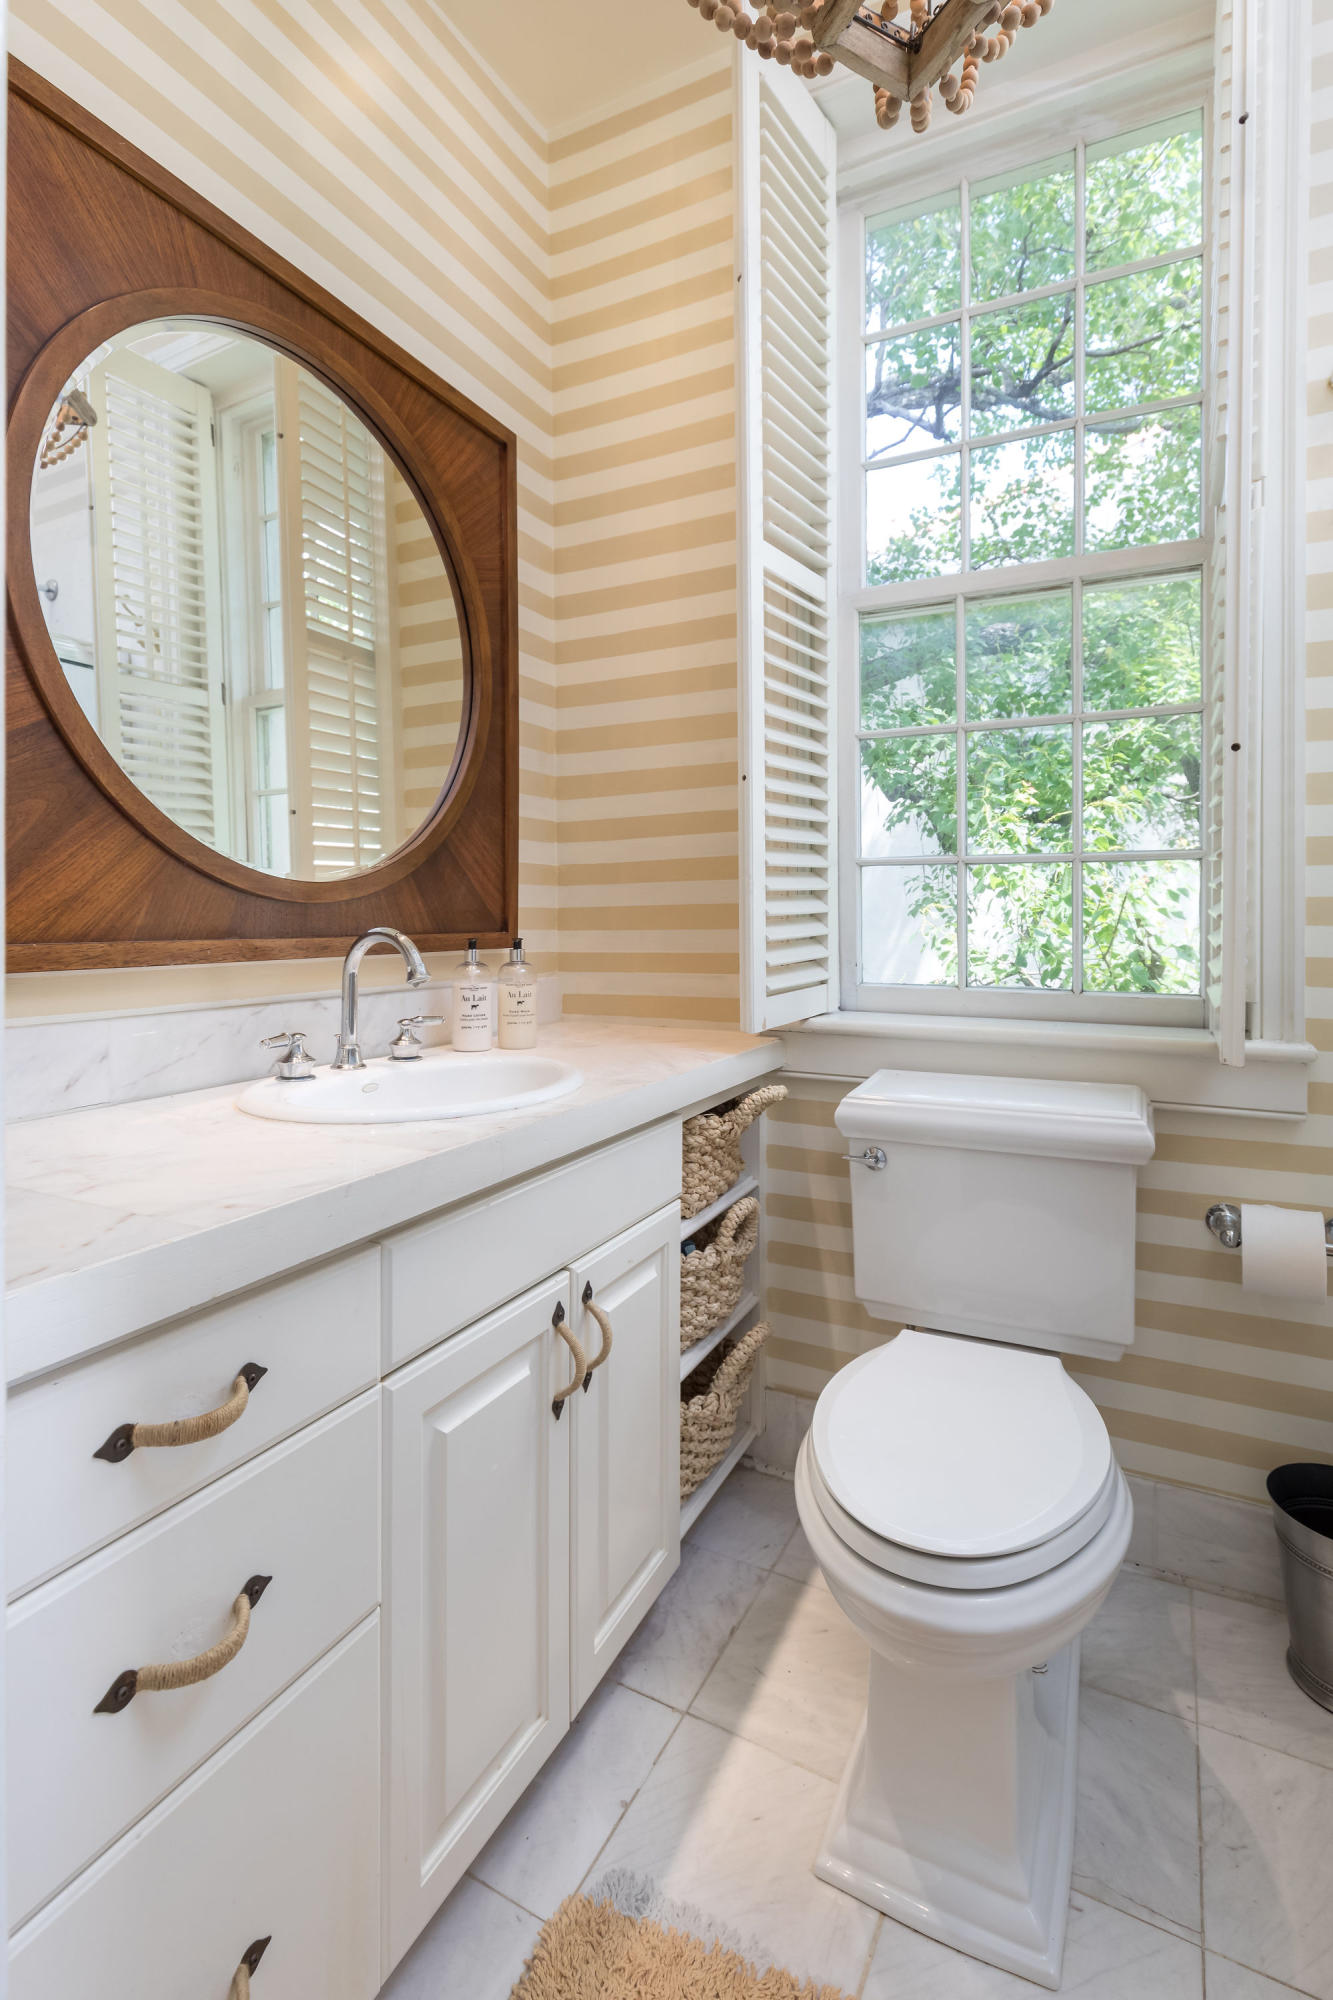 South of Broad Homes For Sale - 84 Church, Charleston, SC - 0